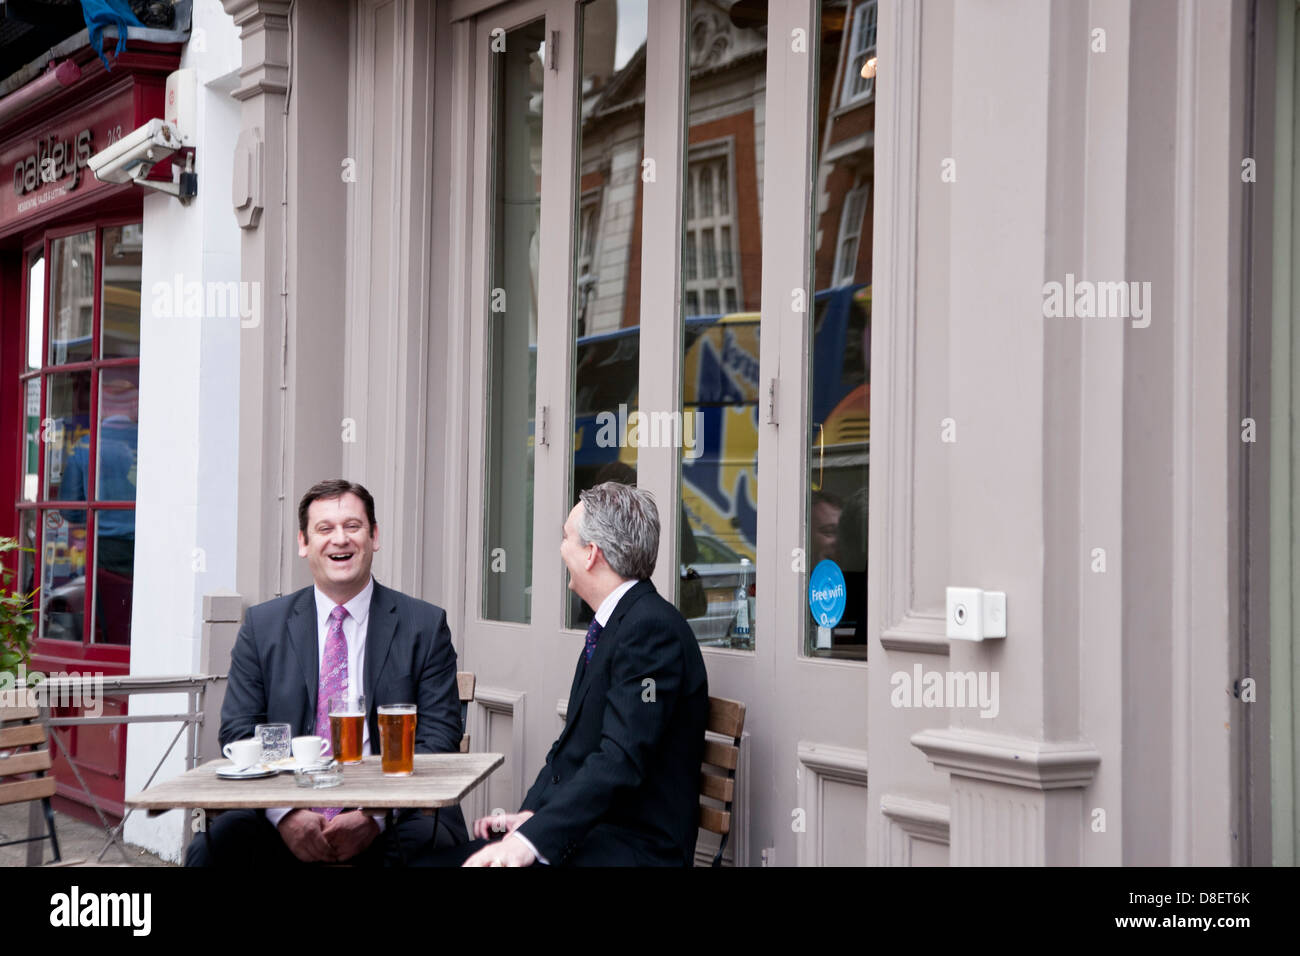 executives socialising with lagers, London, England, UK, GB - Stock Image